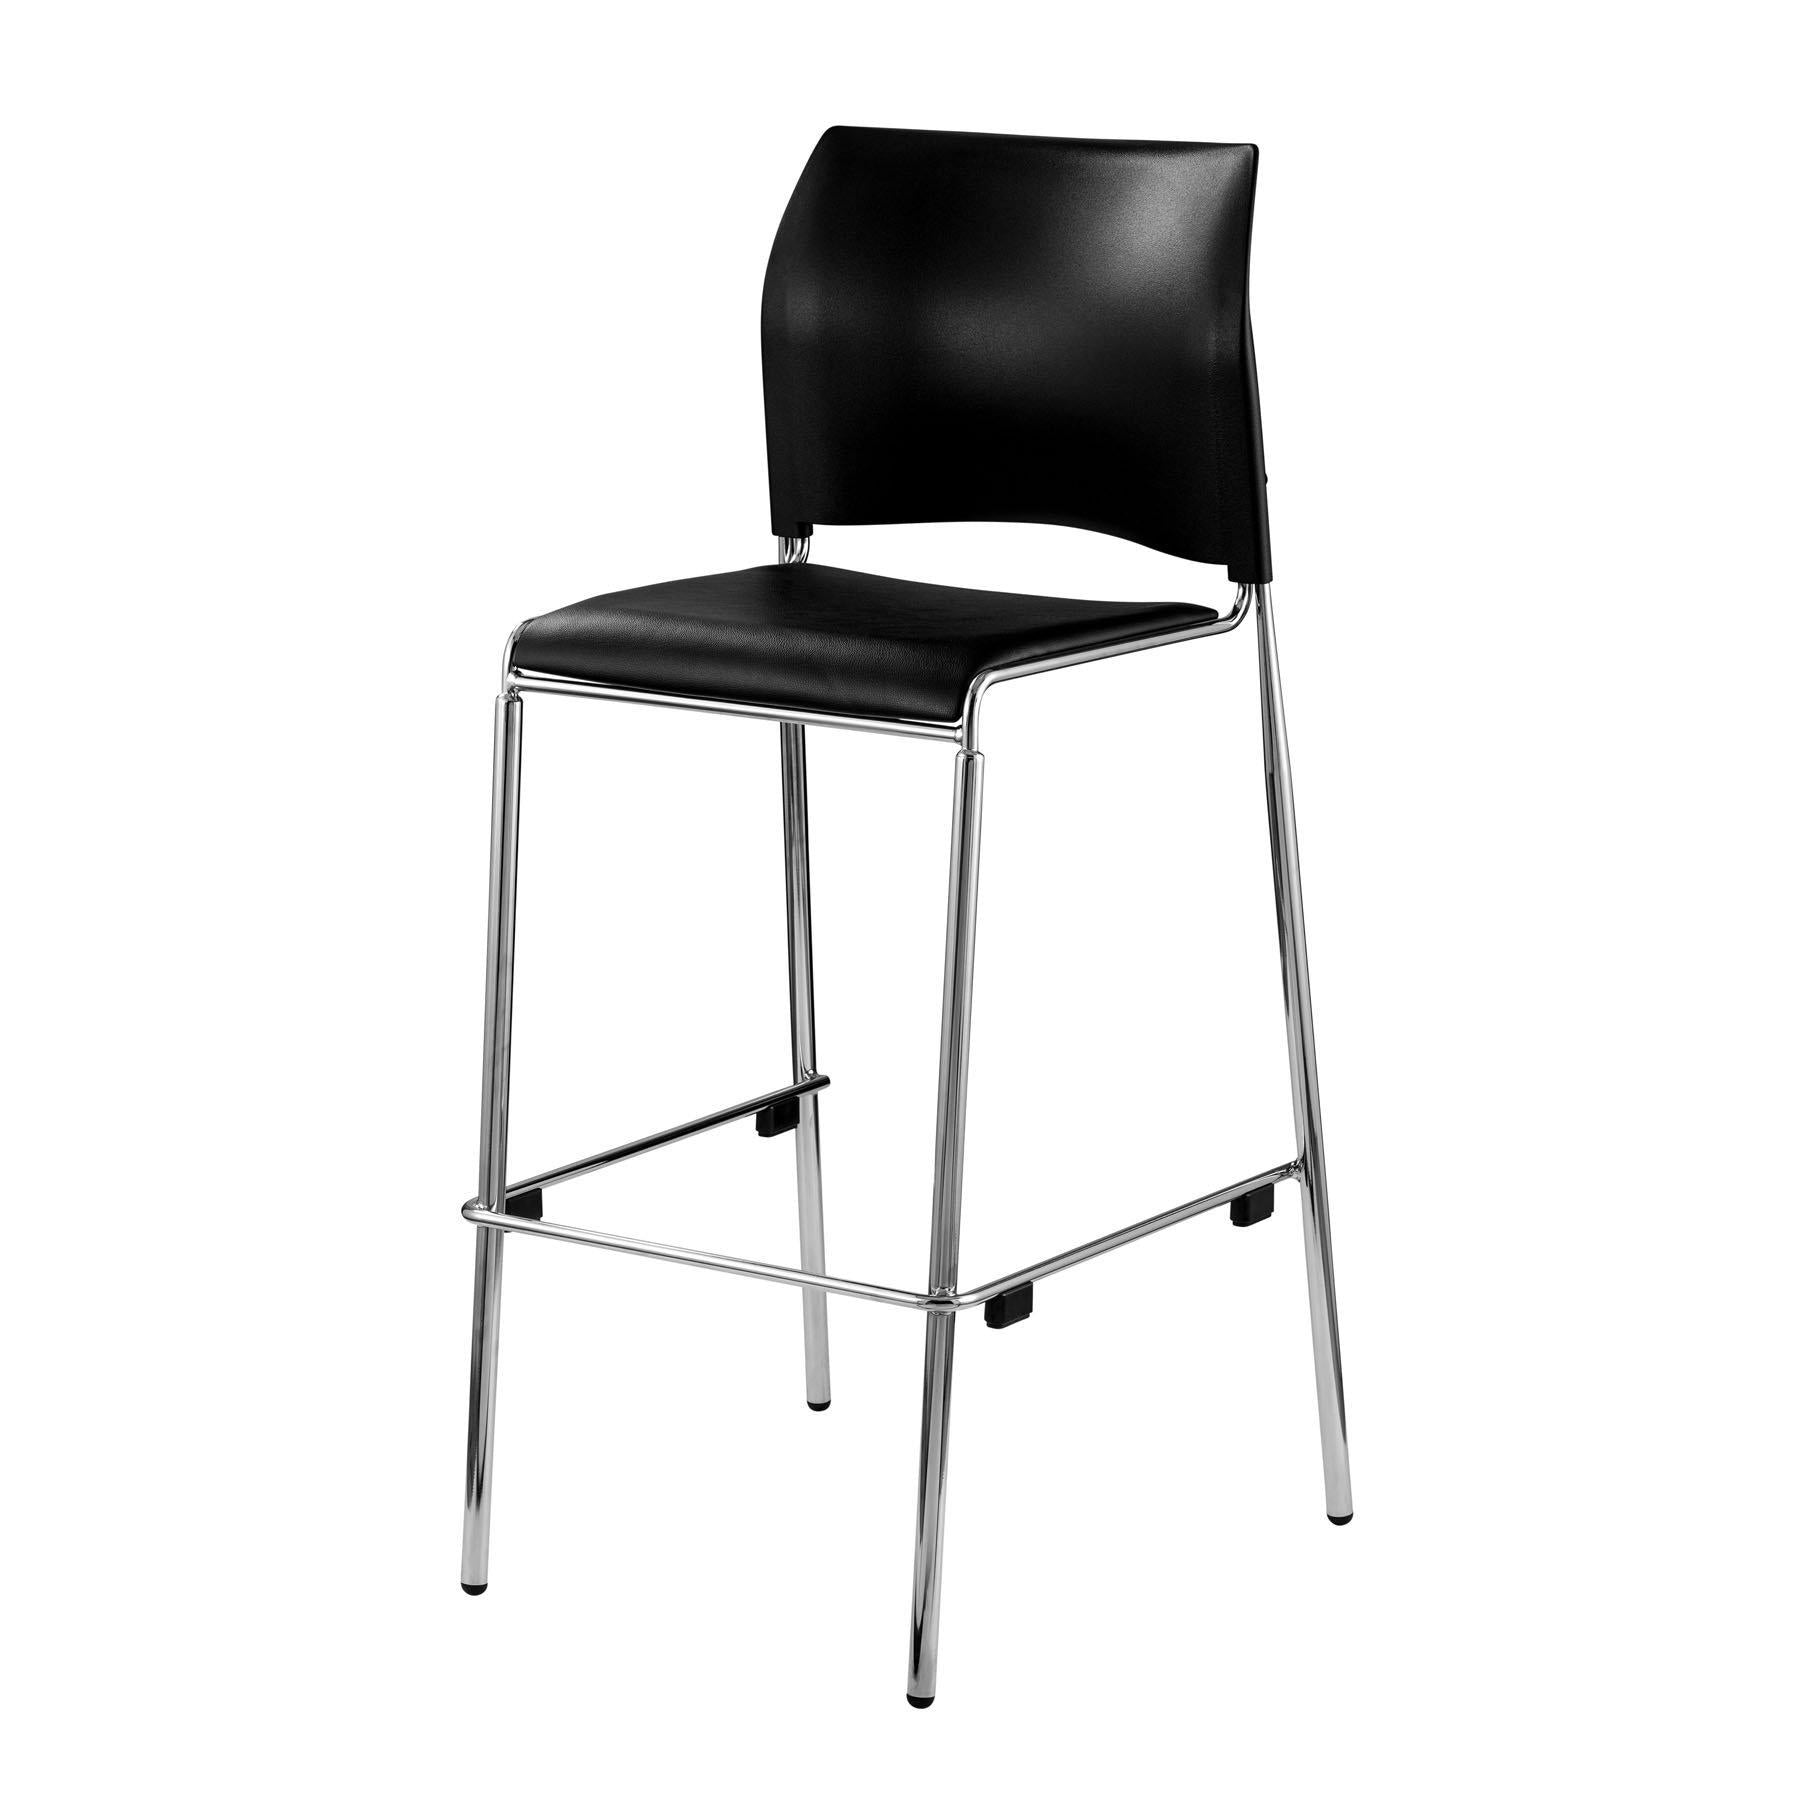 Cafetorium Bar Stool, Black Vinyl Seat, Black Plastic Back, Chrome Frame-Stools-